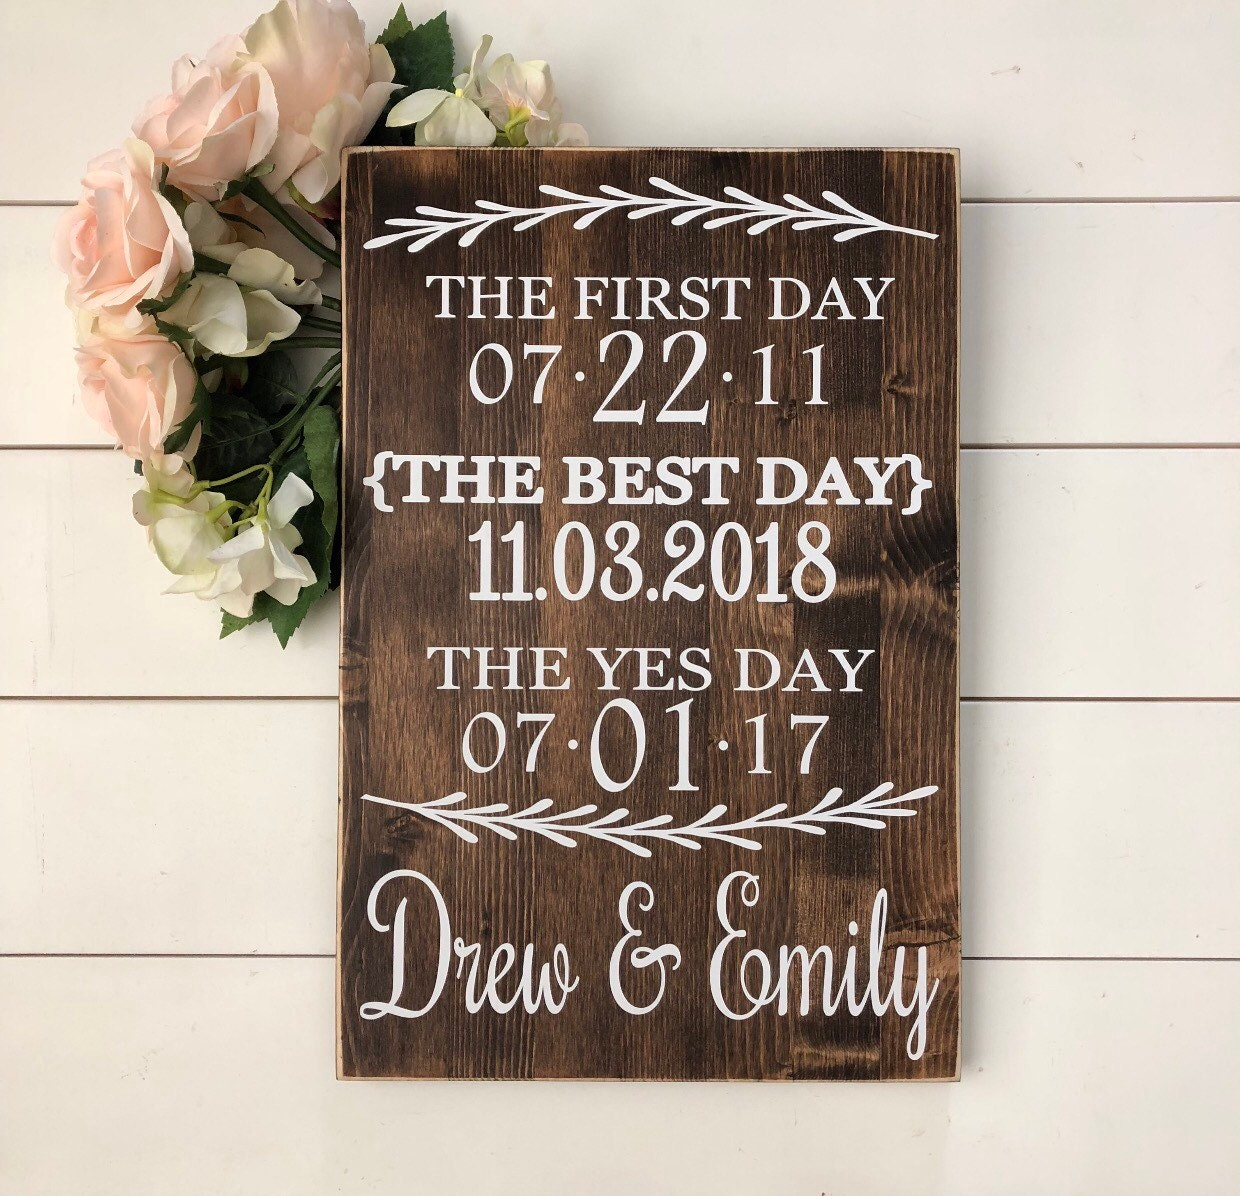 Our Love Story Sign, Special Dates Sign, First Day Yes Day Best Day Sign, Wedding Date Sign